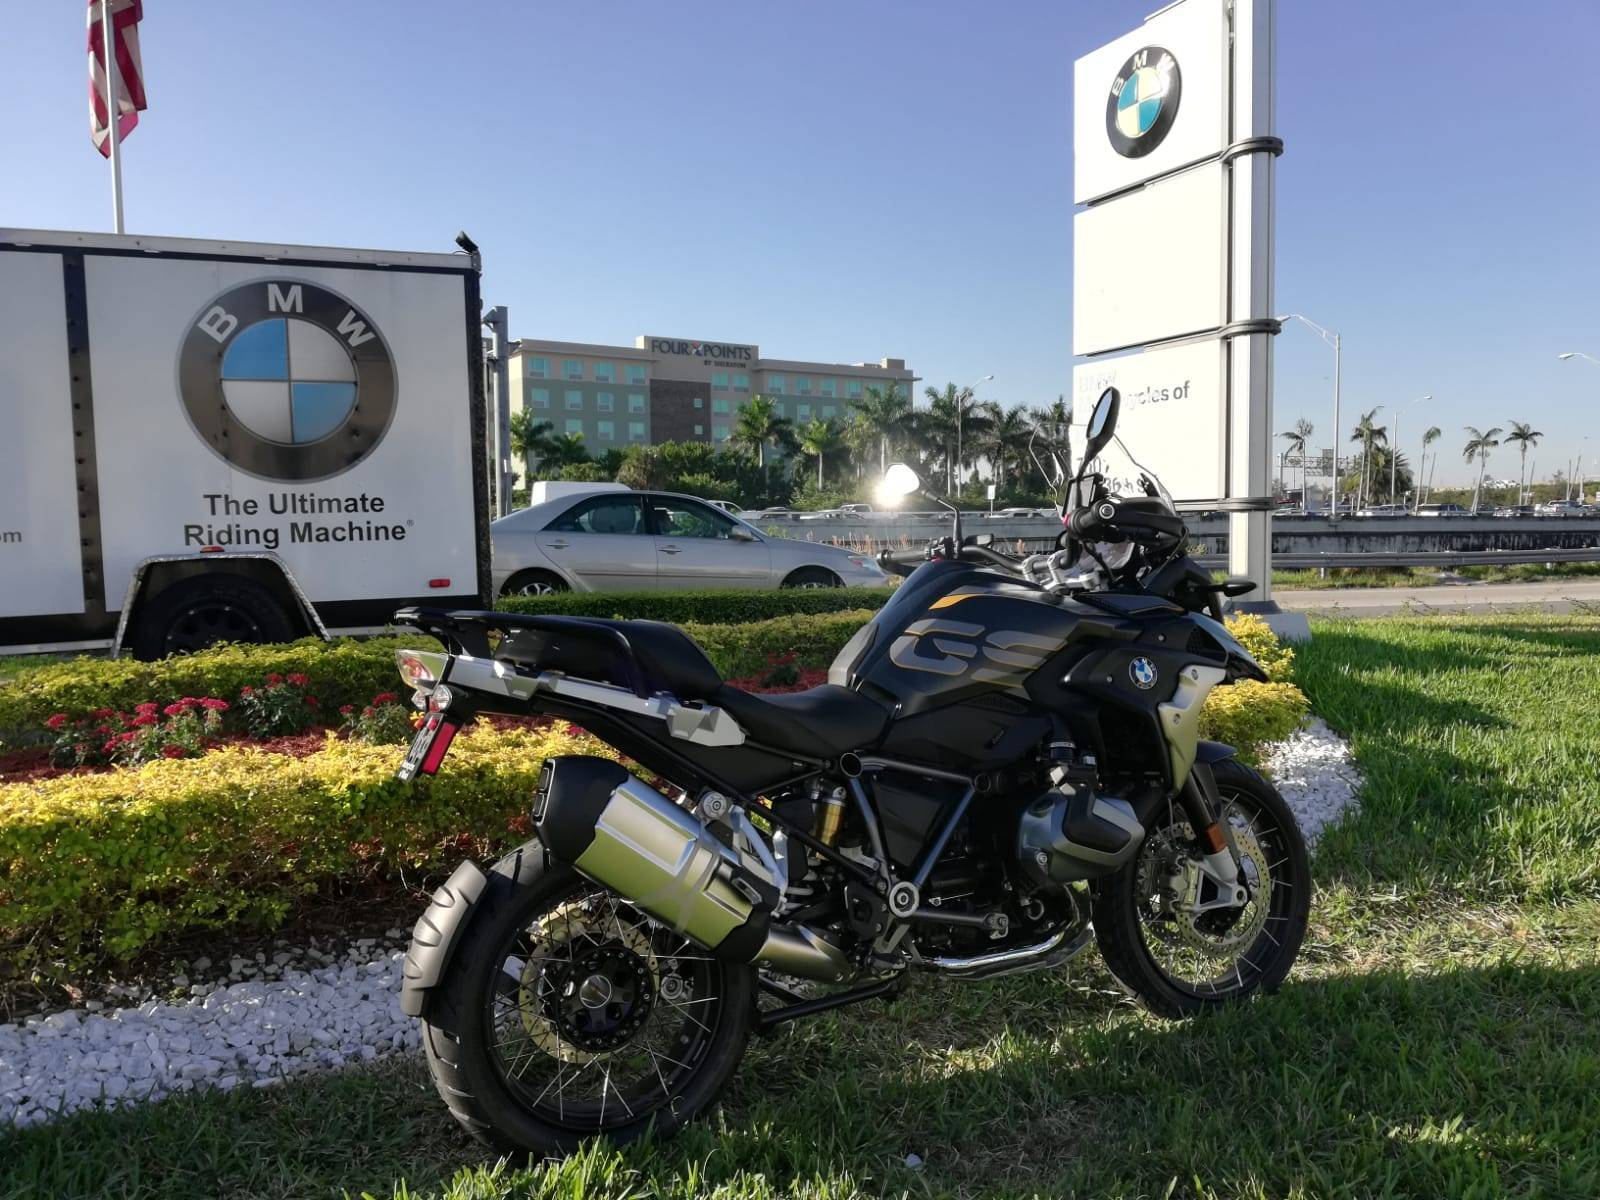 New 2019 BMW R 1250 GS for sale, BMW R 1250GS for sale, BMW Motorcycle GS, new BMW GS, Spirit of GS, BMW Motorcycles of Miami, Motorcycles of Miami, Motorcycles Miami, New Motorcycles, Used Motorcycles, pre-owned. #BMWMotorcyclesOfMiami #MotorcyclesOfMiami. - Photo 18